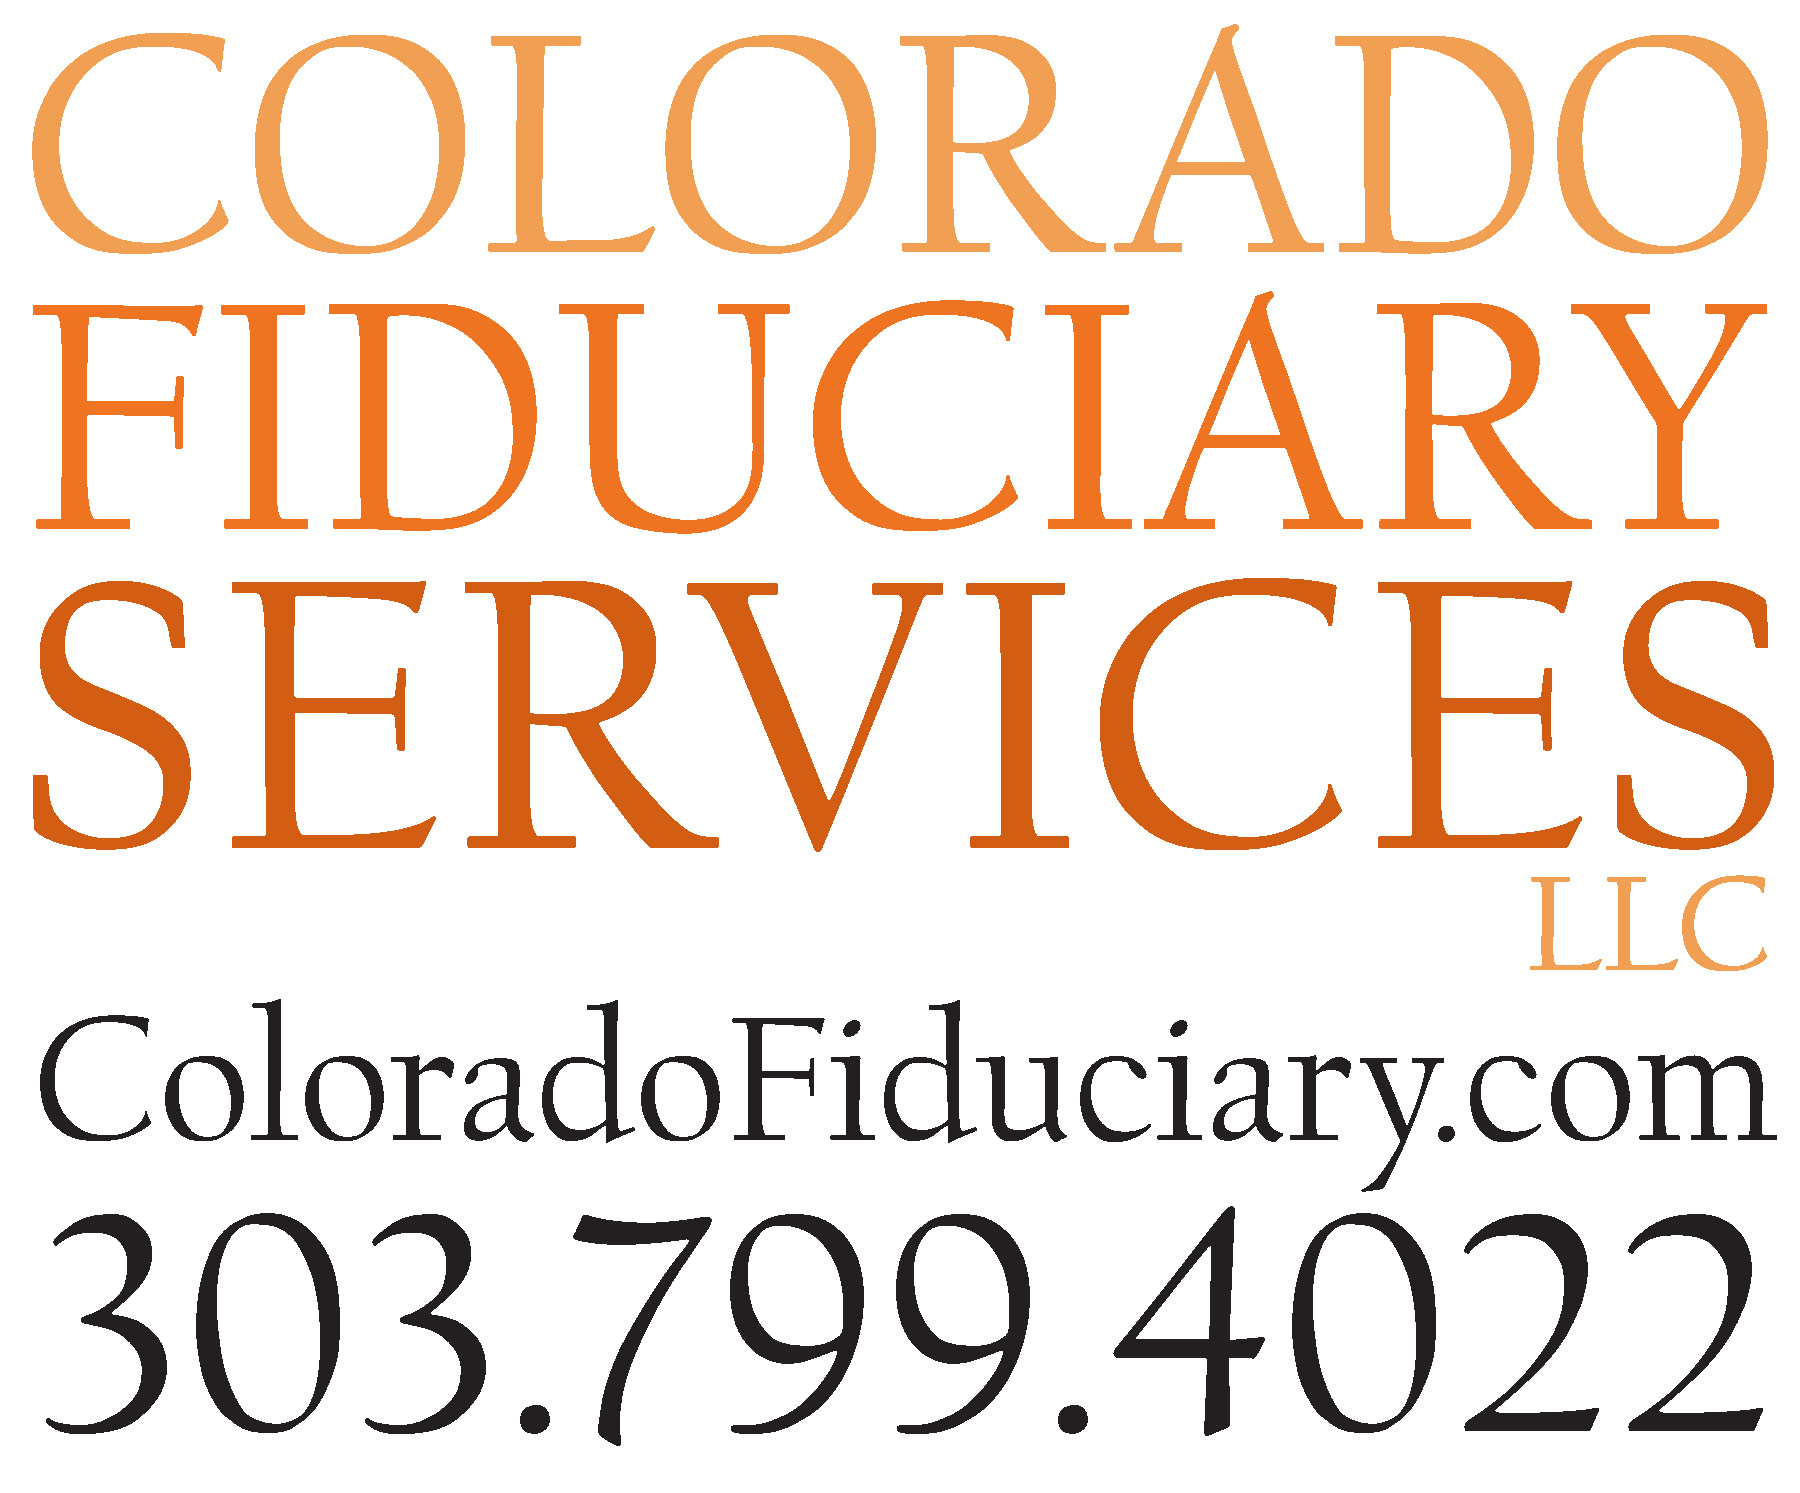 Colorado fiduciary